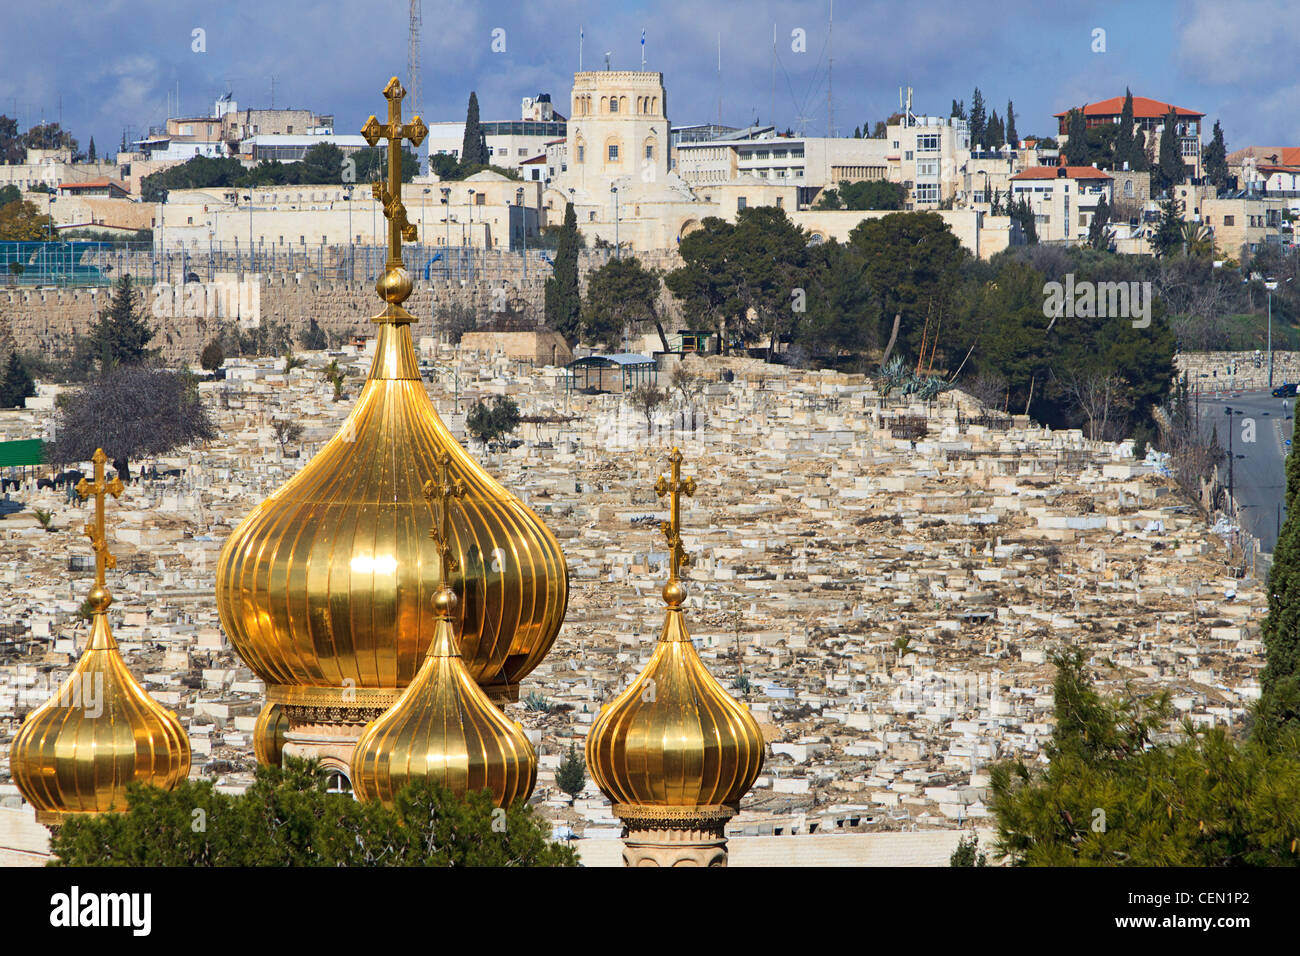 Muslim graves, gold spire of Church of Mary Magdalene and the old City of Jerusalem viewed from the Mount of Olives - Stock Image